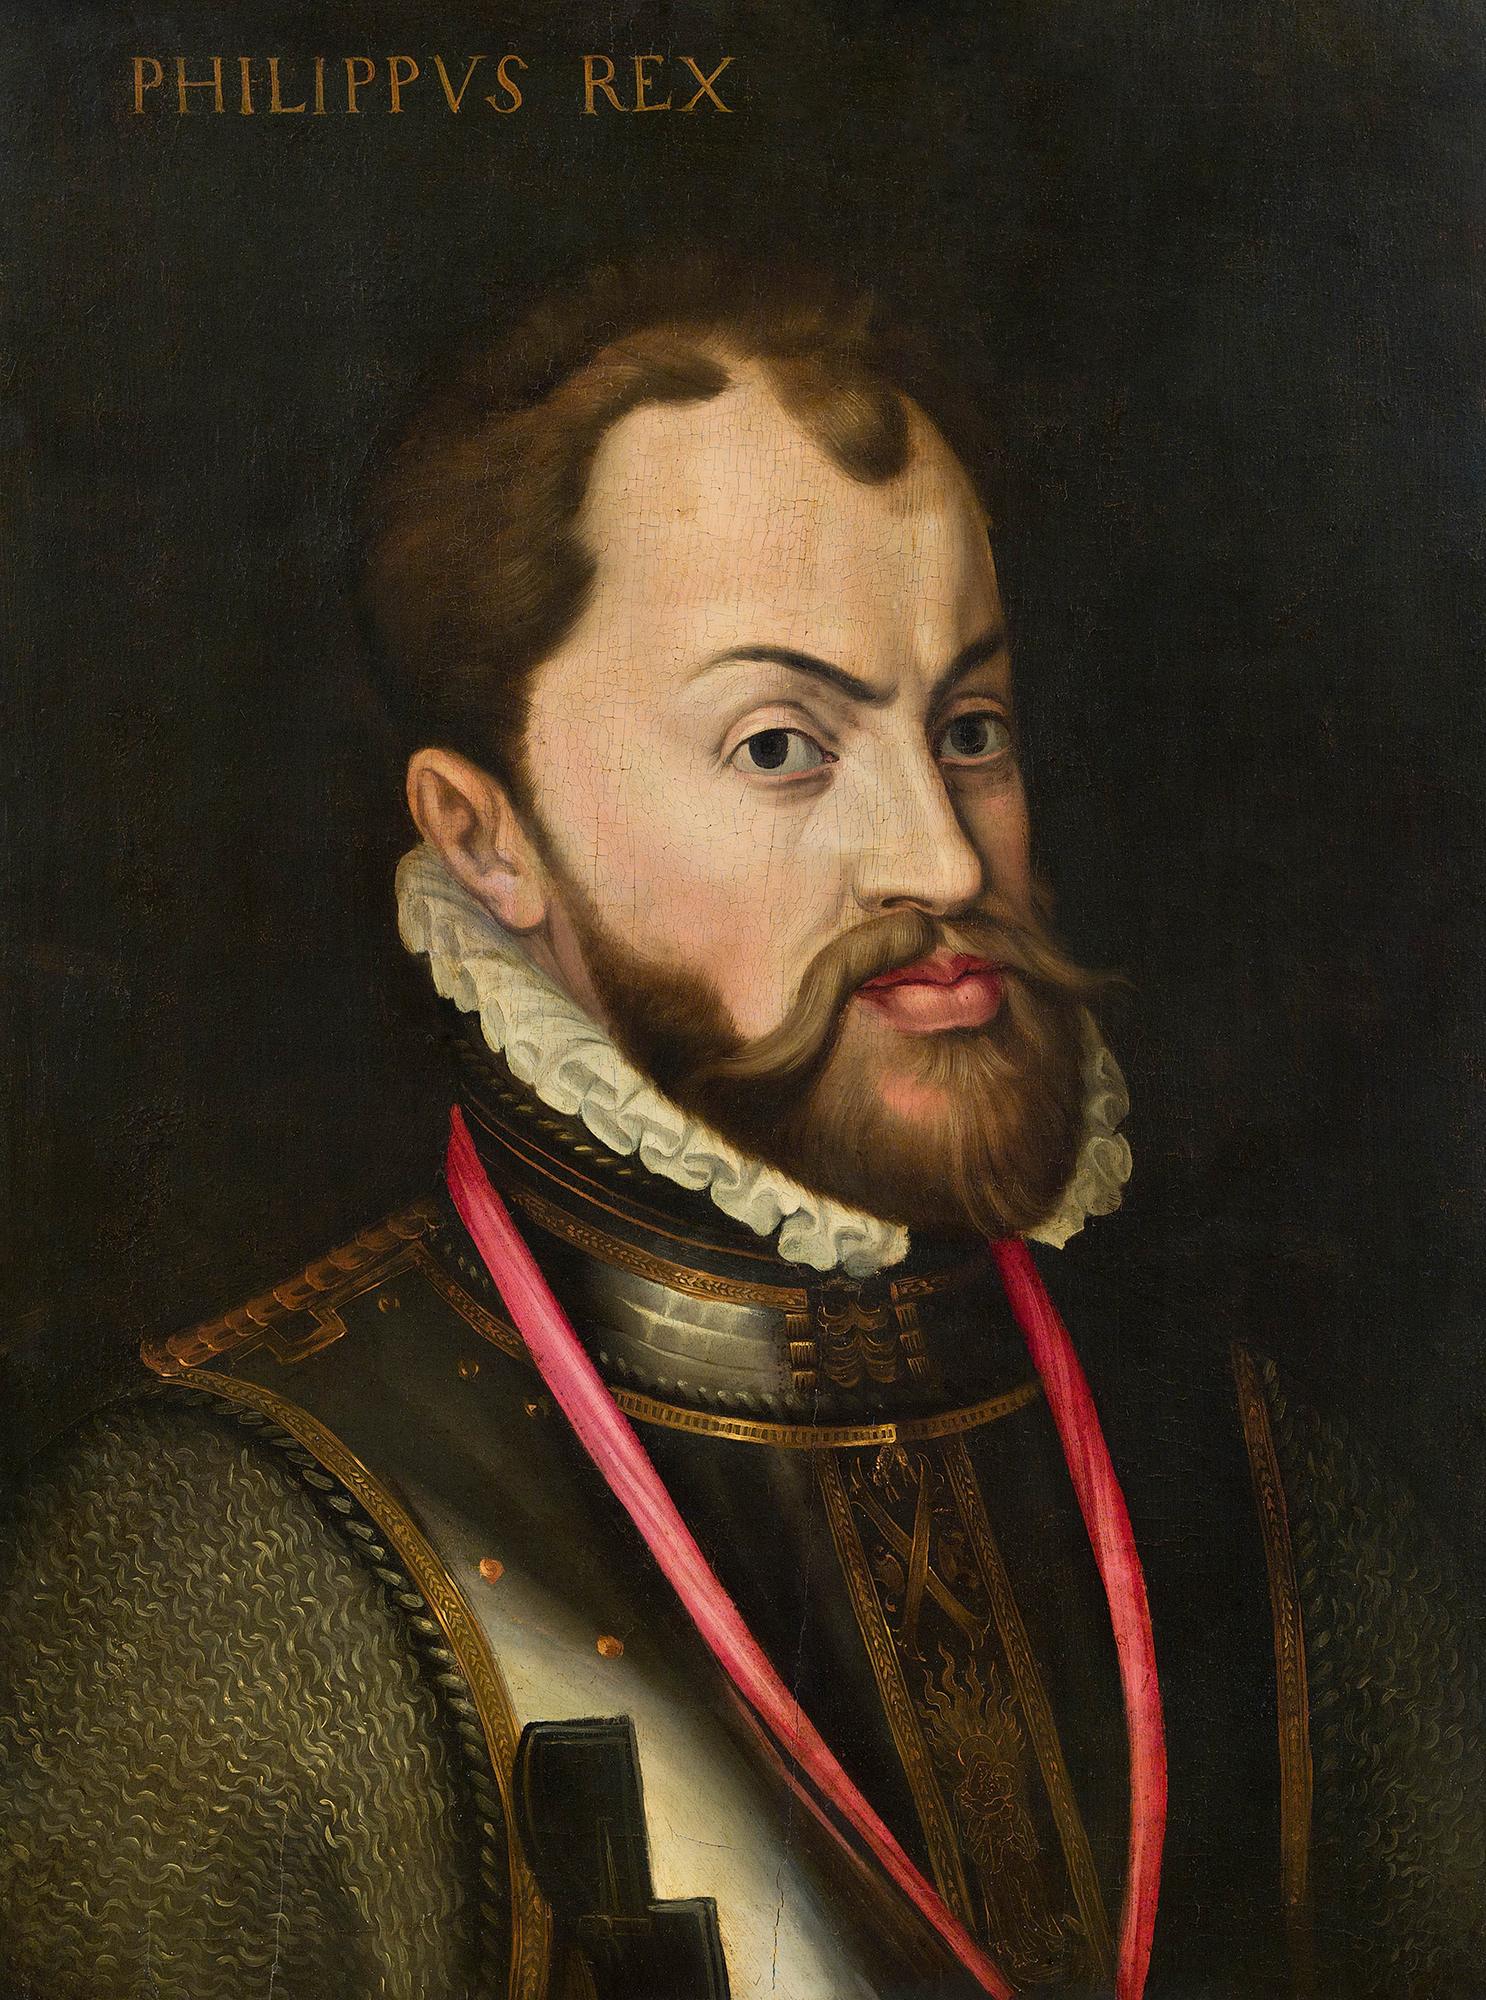 Portrait of Philip II (1527-1598), King of Spain (1556), King of Naples (1554), King of England (with Mary I) from 1554 to 1558, King of Portugal (1581), Lord of the Provinces of the Netherlands (1555), Duke of Milan (1540), Prince of Asturias (1528-1556)